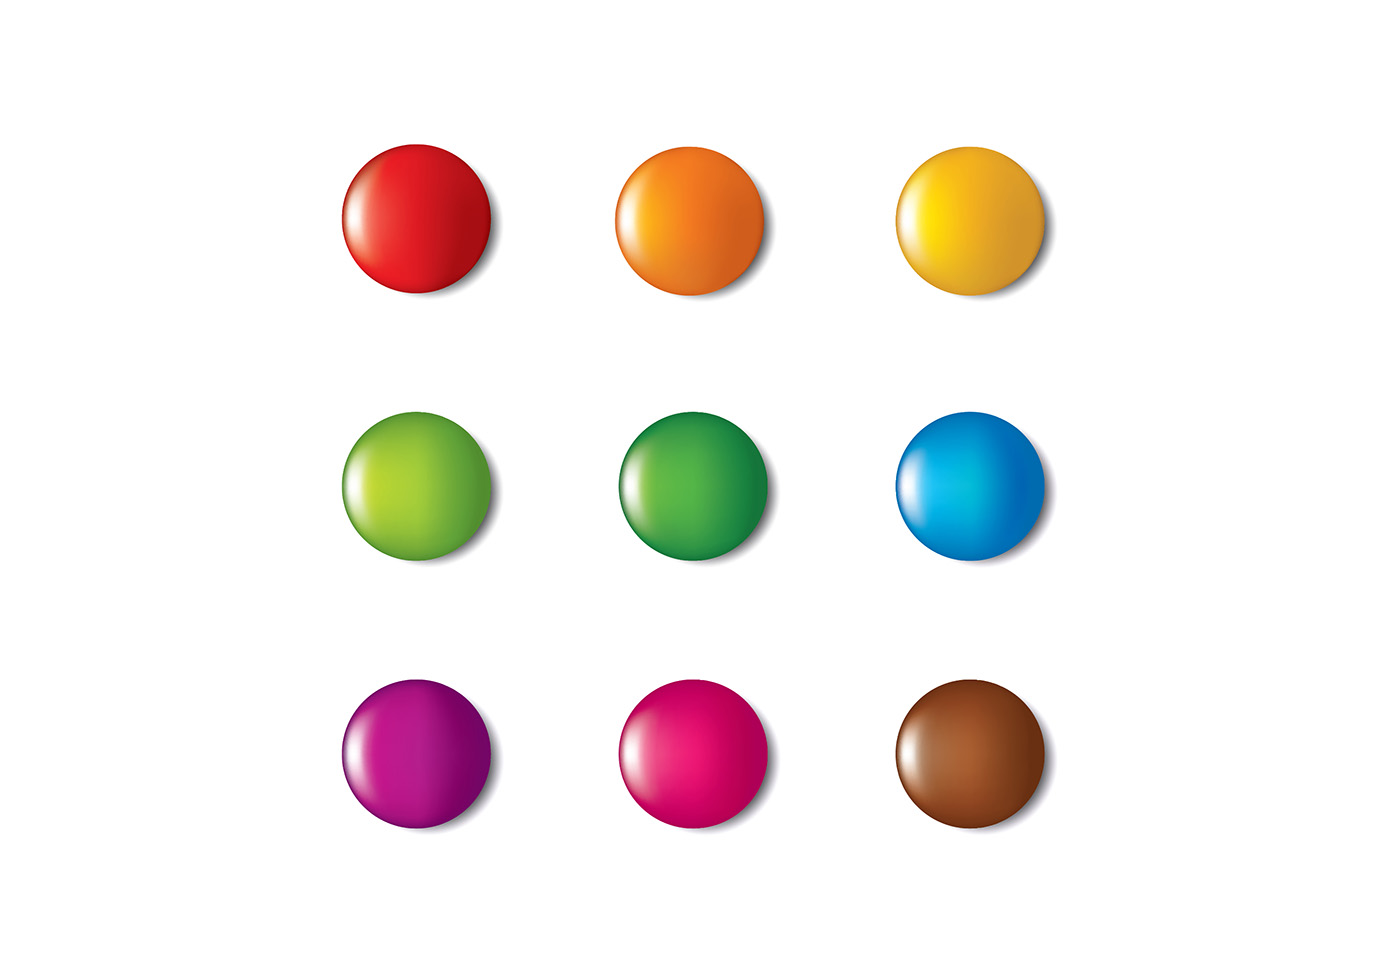 SMARTIES VECTOR REAL TOP - Download Free Vector Art, Stock ...